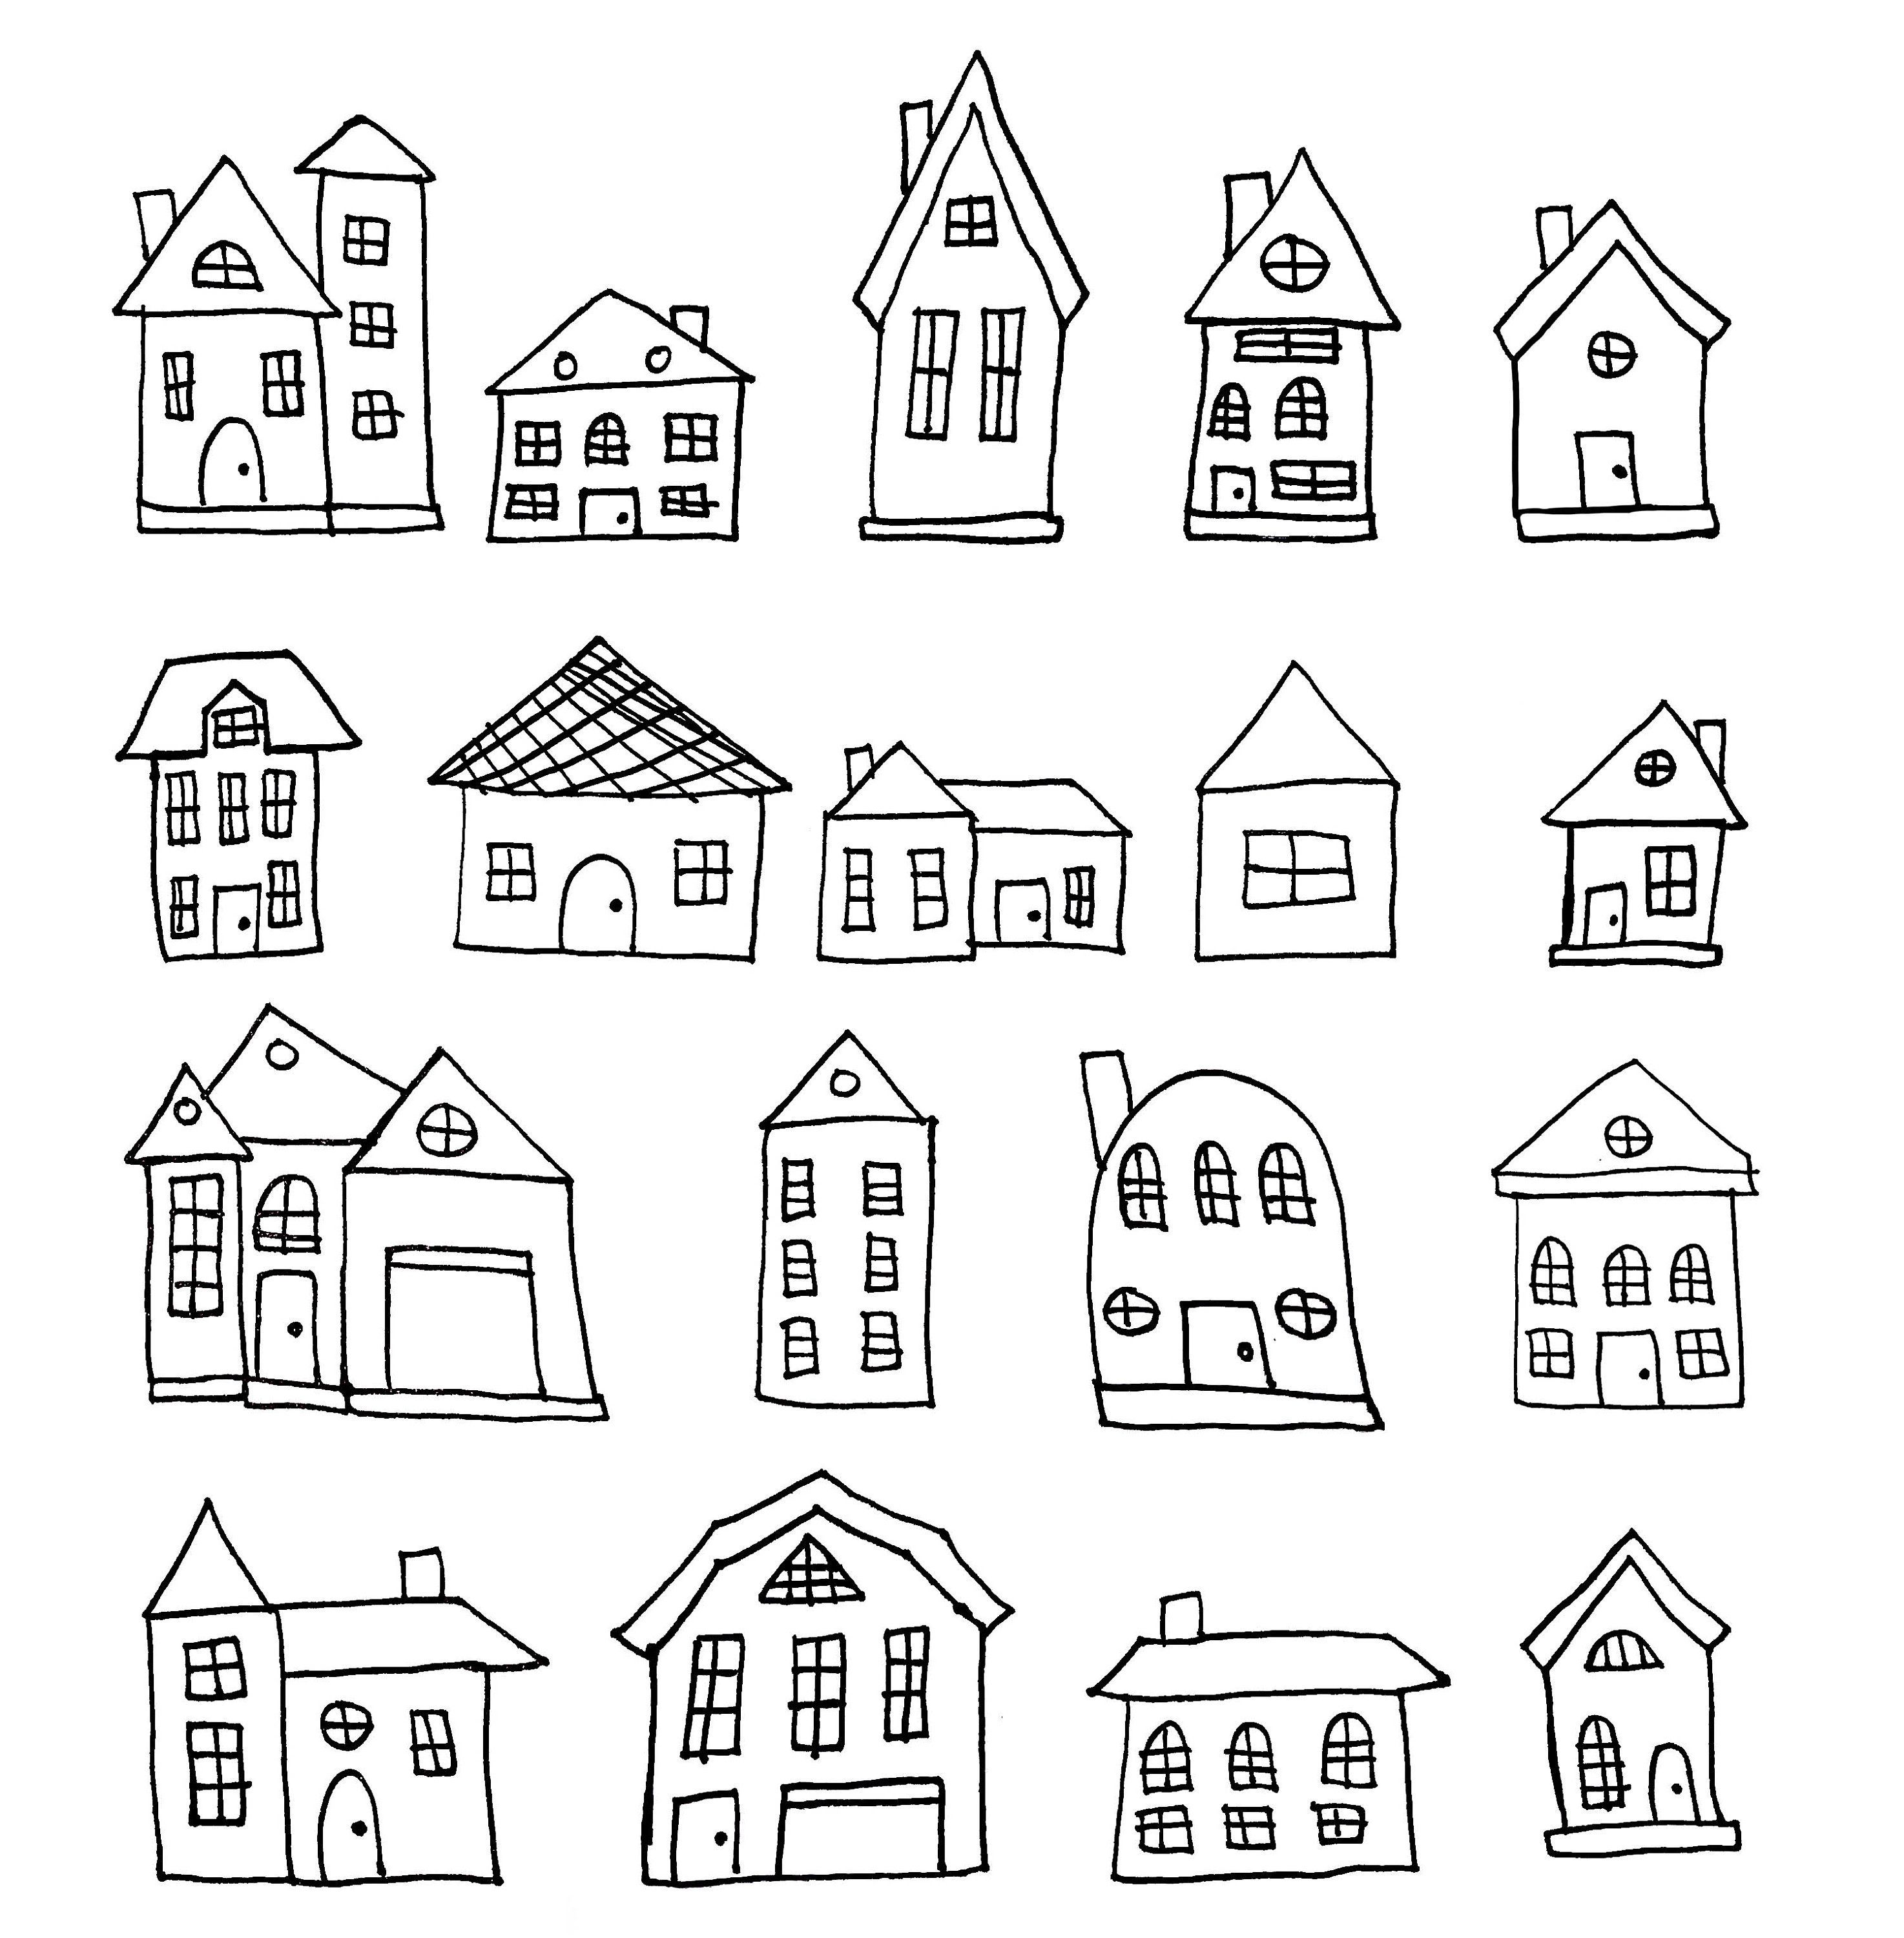 Black White Houses Clipart Set Png Hand Drawn Houses Doodles Cute Houses Personal Use Commercial Use Instant Download House Doodle House Clipart How To Draw Hands